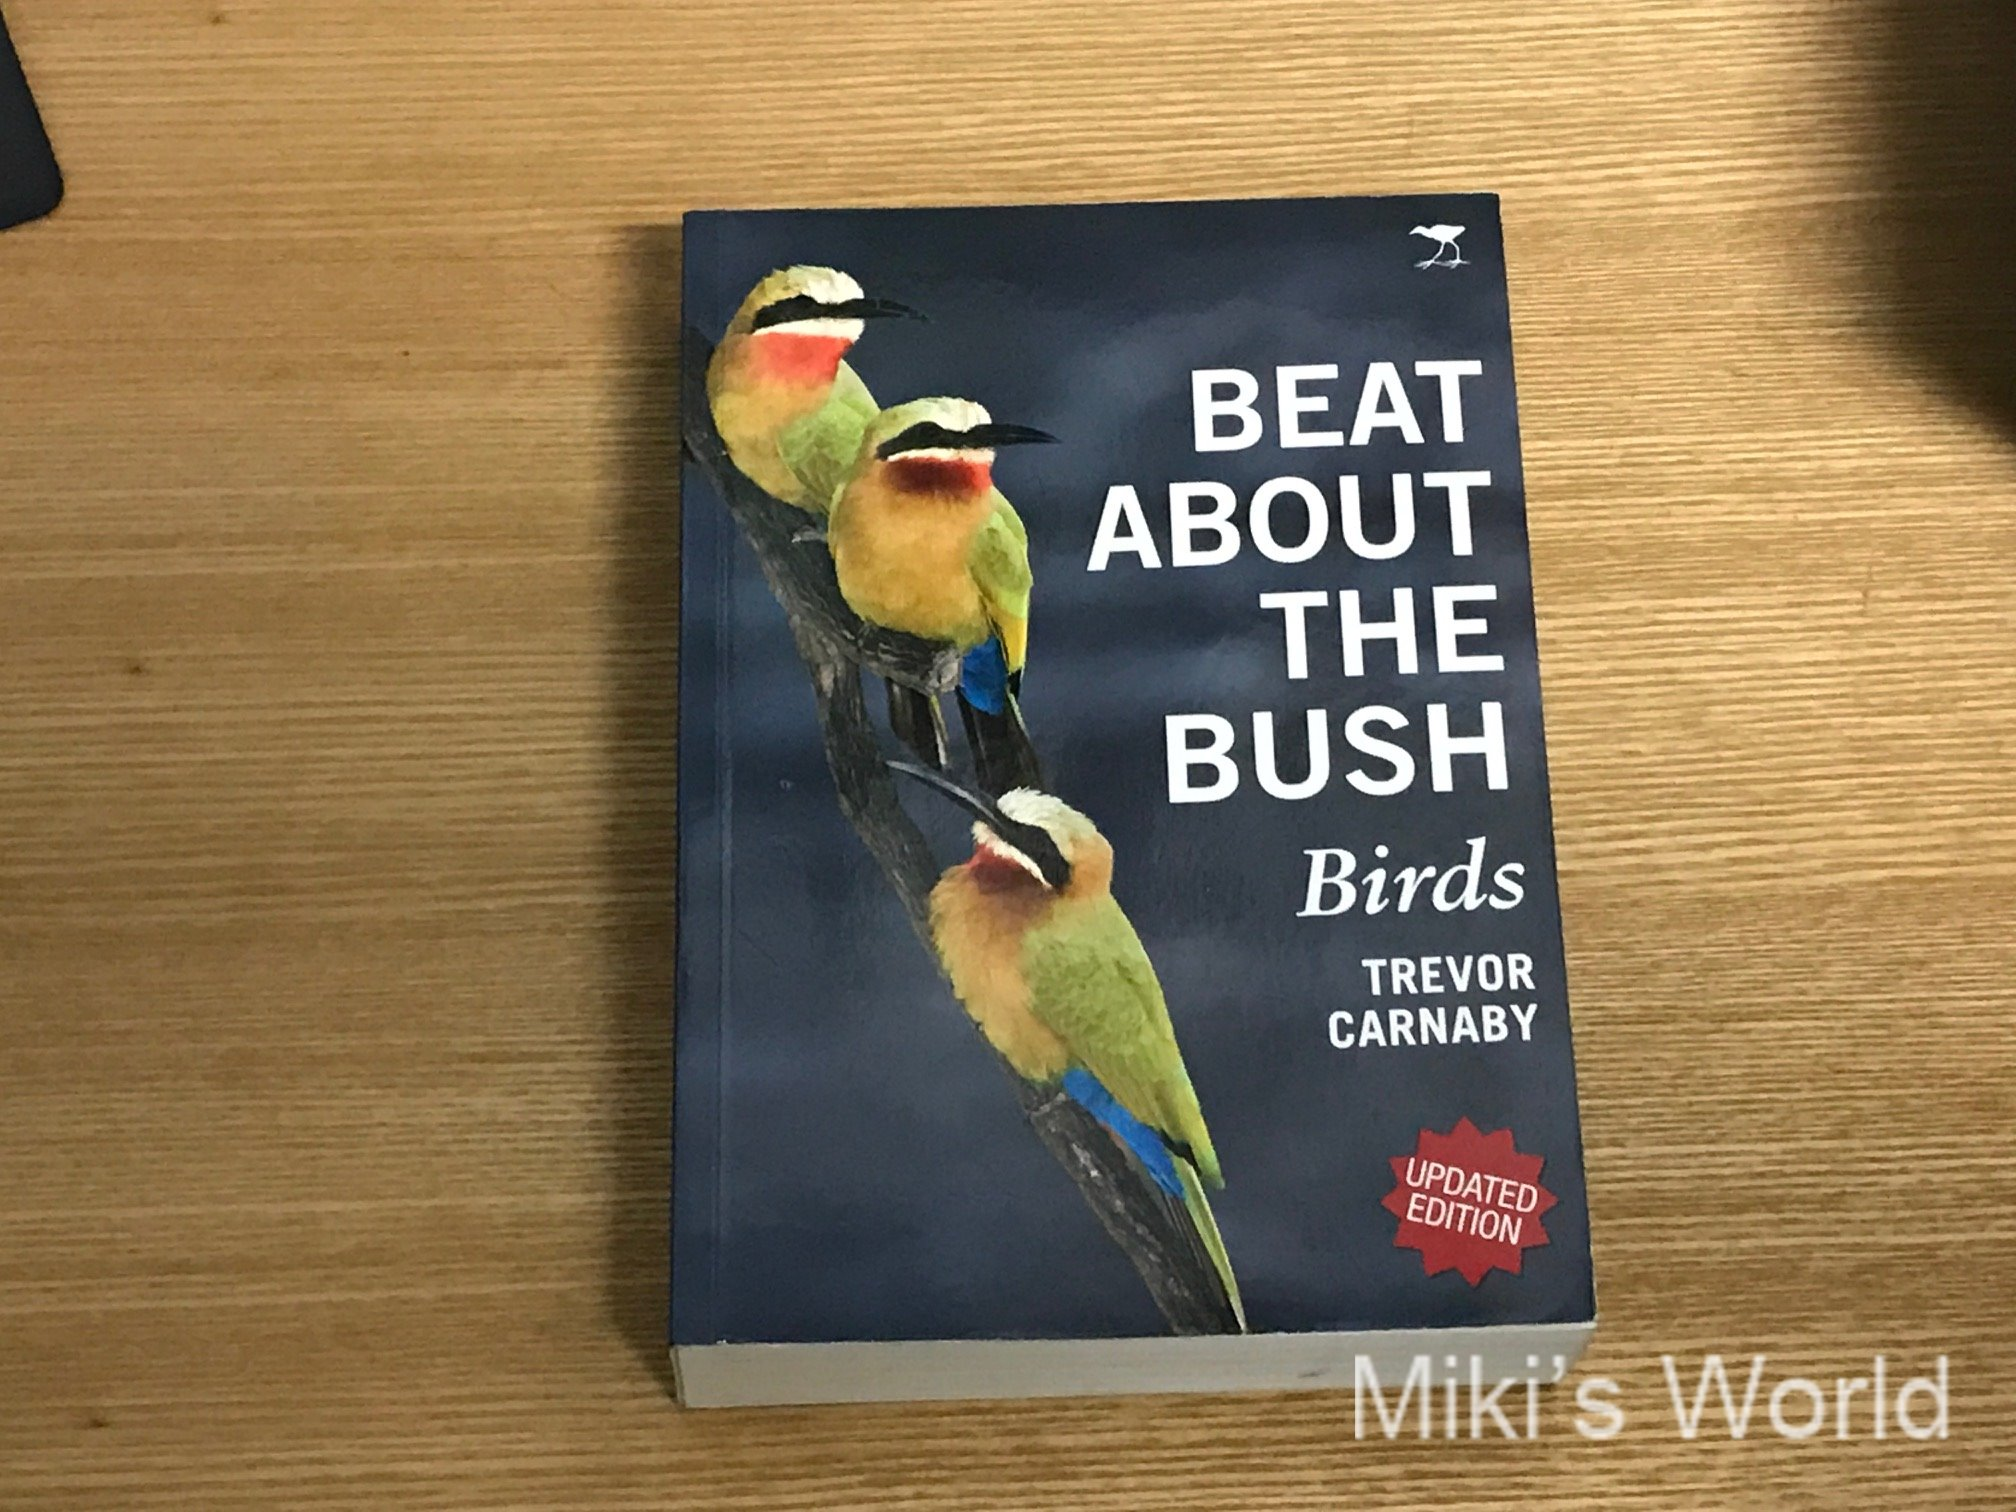 BEAT ABOUT THE BUSH Birds TREVOR CARBABY著 鳥の超おもしろ本